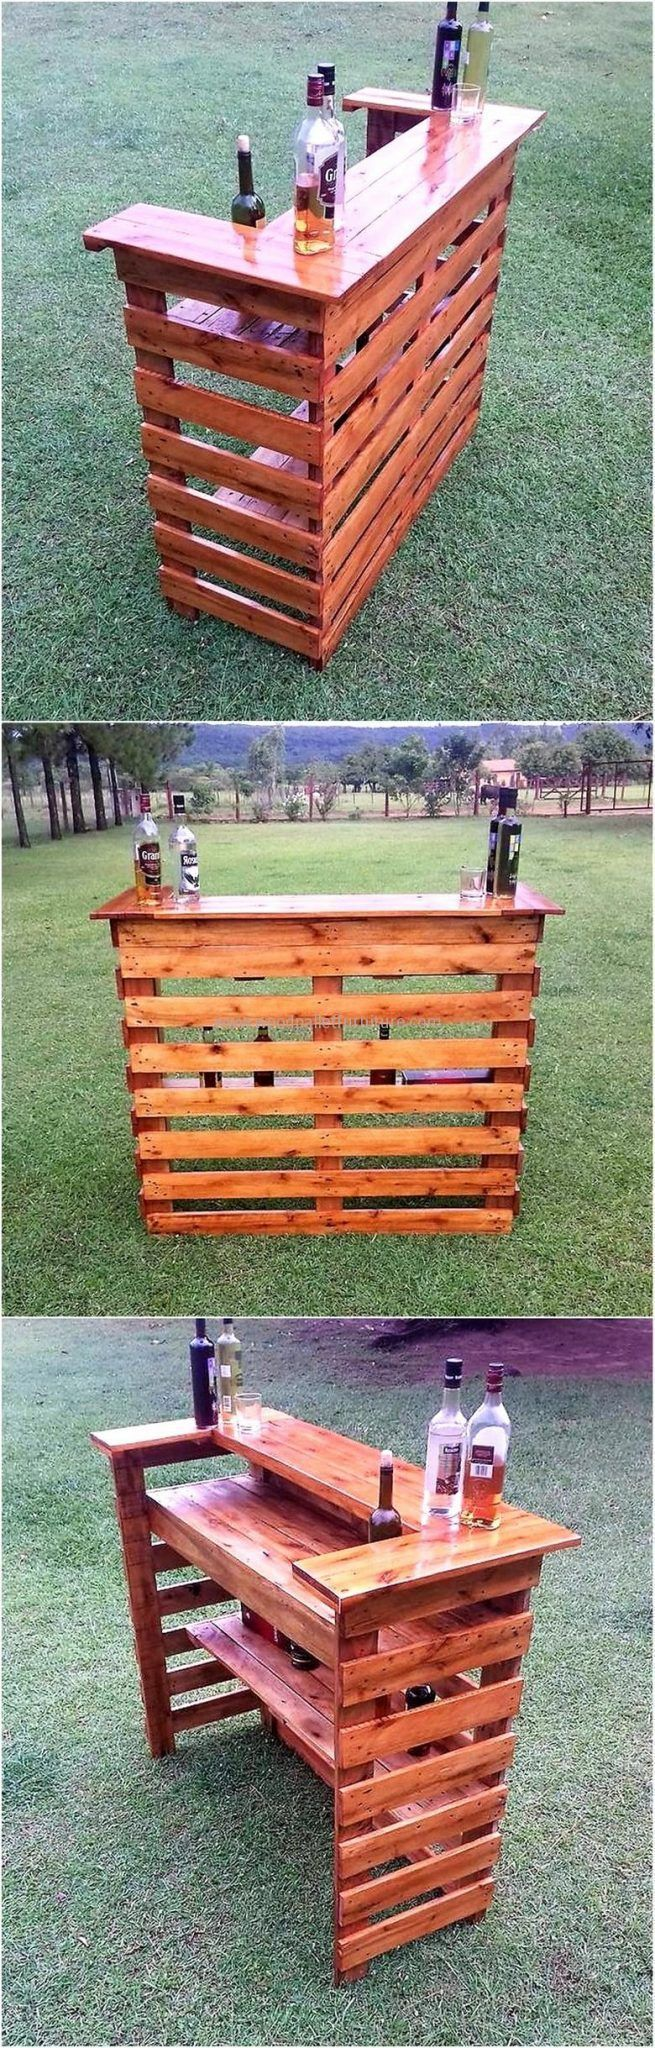 Gorgeous Picket Pallet Bar DIY Ideas For Your Home!     Plans DIY Outdoor  Cabinet Ideas Stools How To Make A How To Build A Instructions Wood Easy U2026